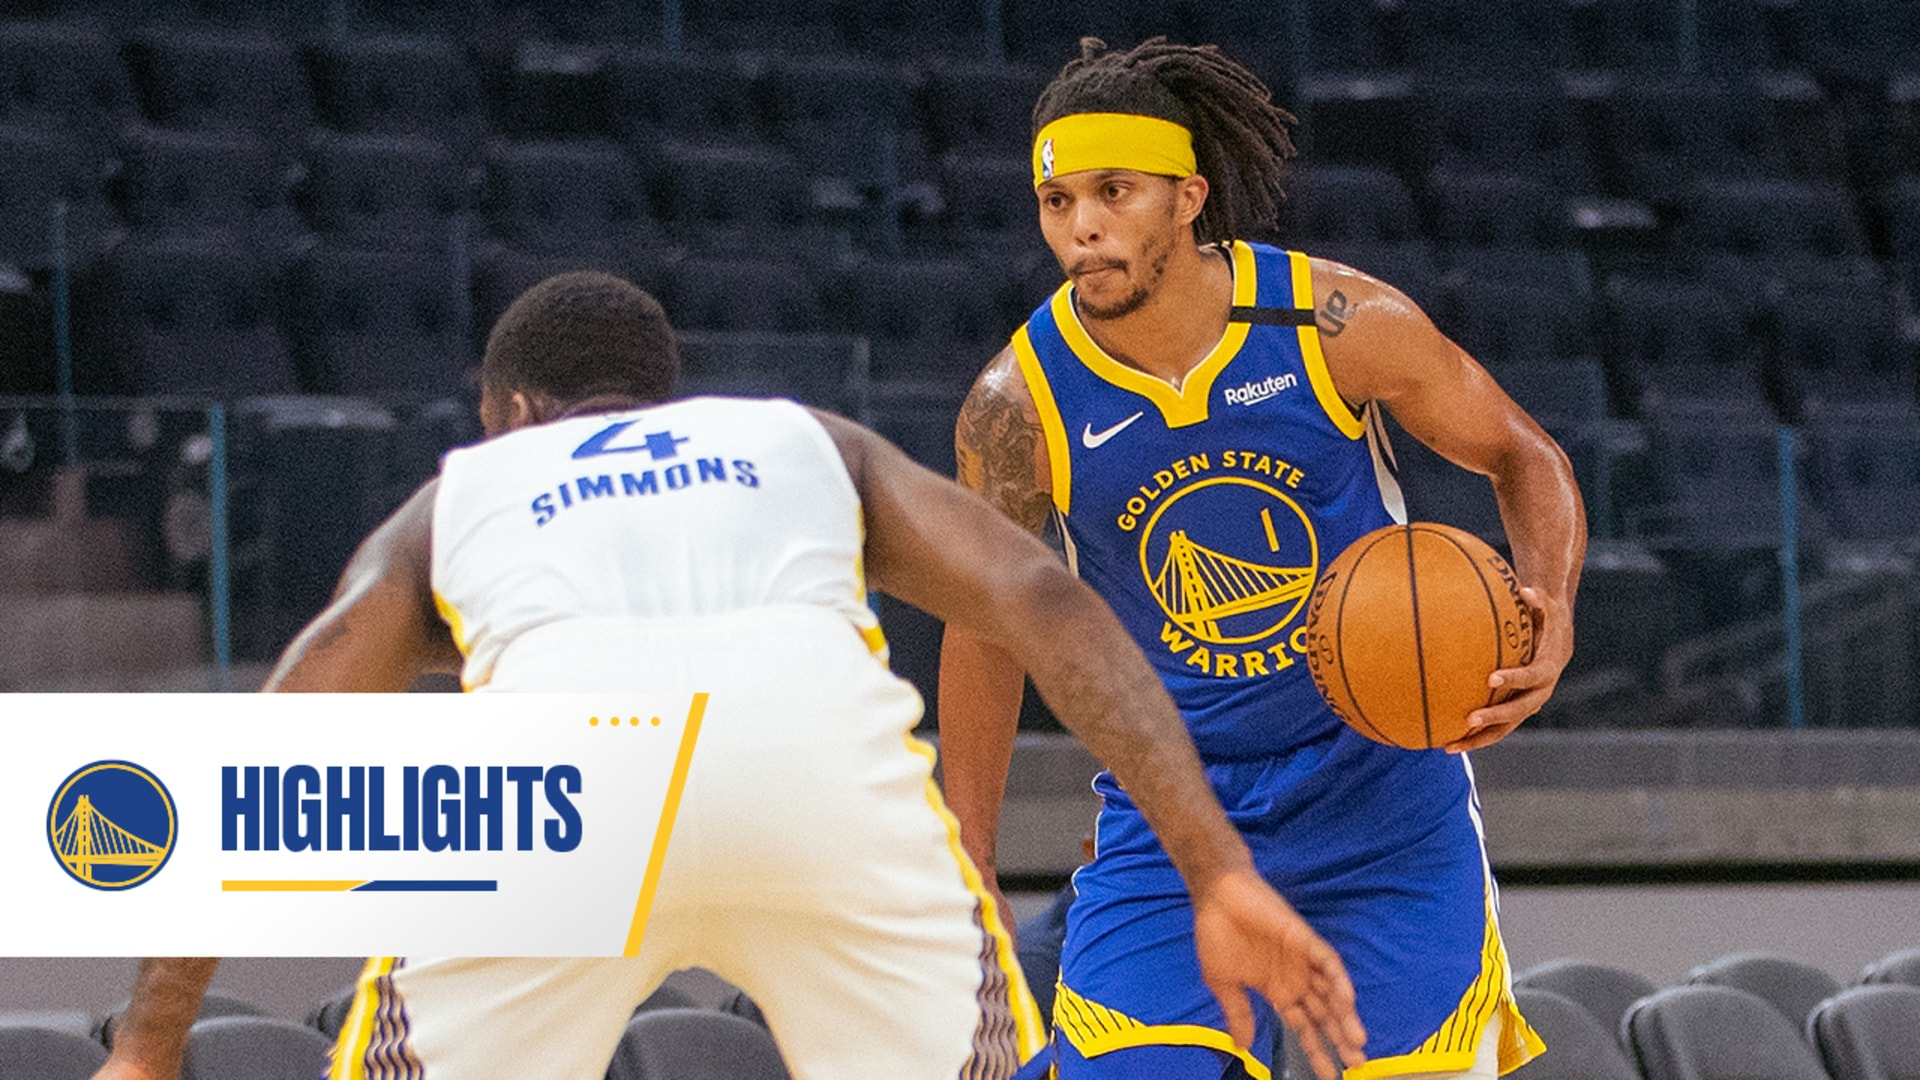 Warriors Minicamp Scrimmage: Third Quarter Highlights